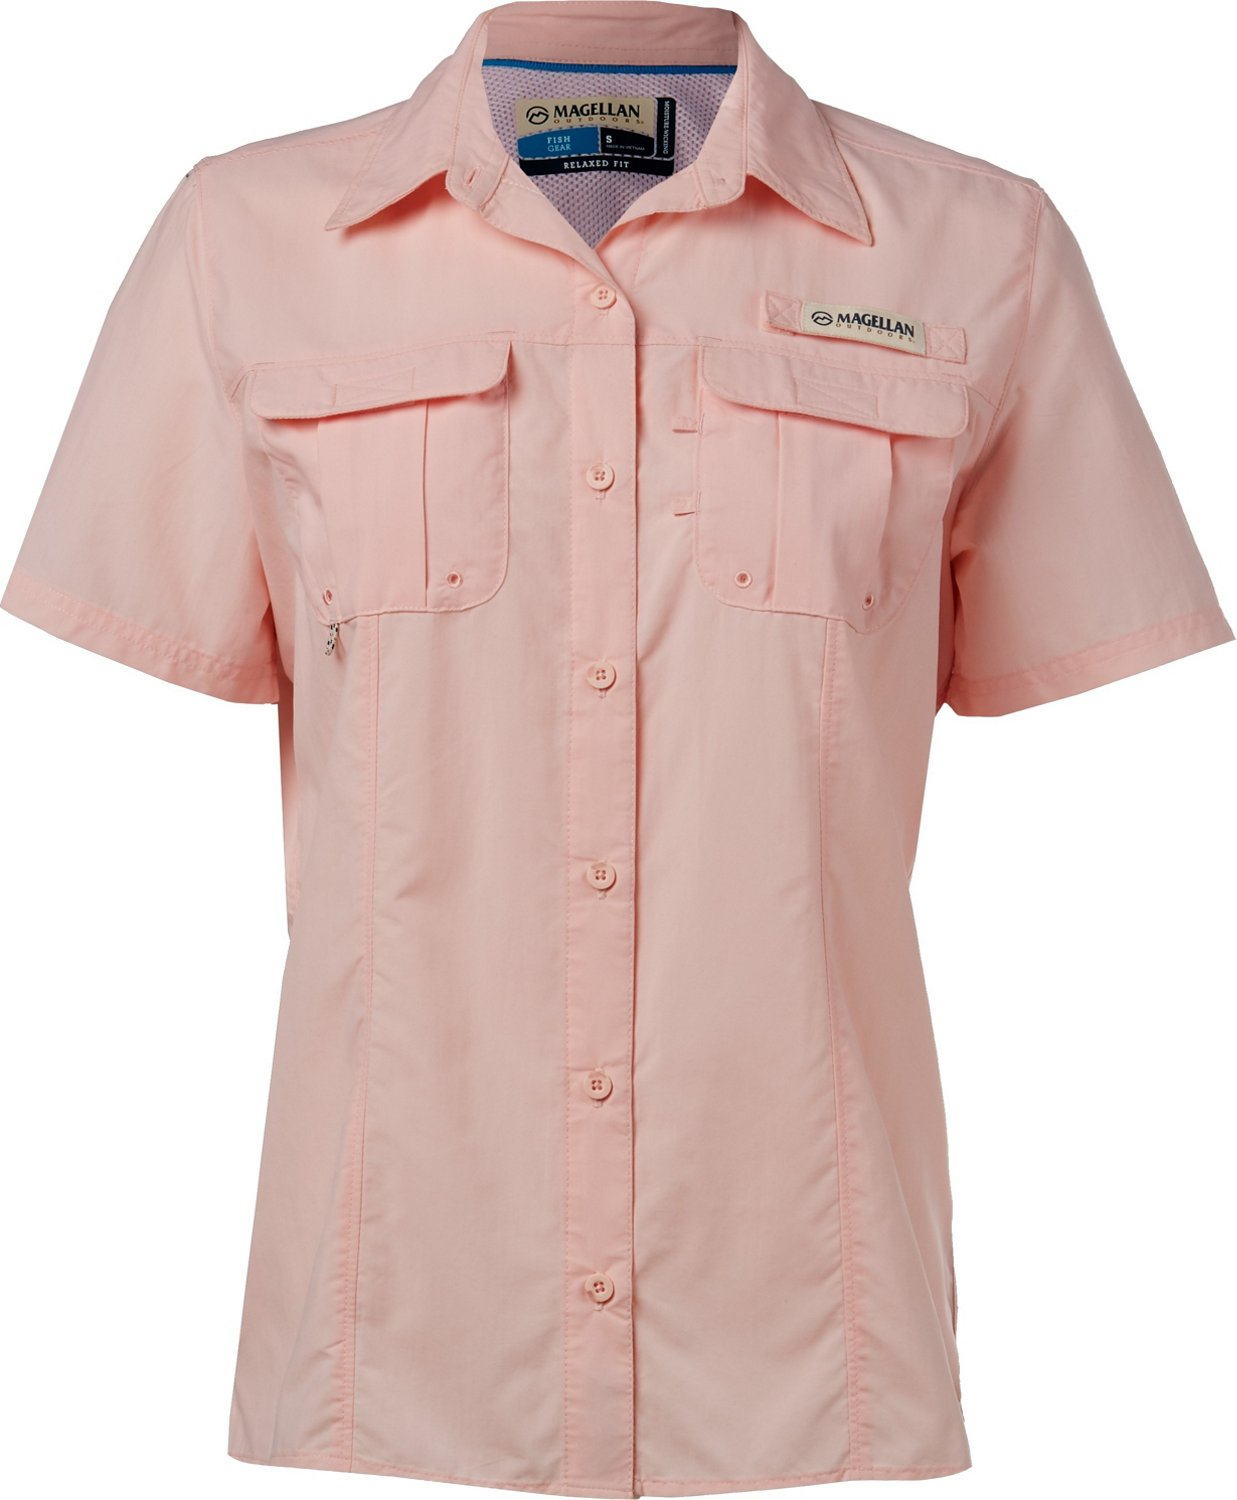 947fd0c97 Display product reviews for Magellan Outdoors Women's Laguna Madre Fishing  Shirt